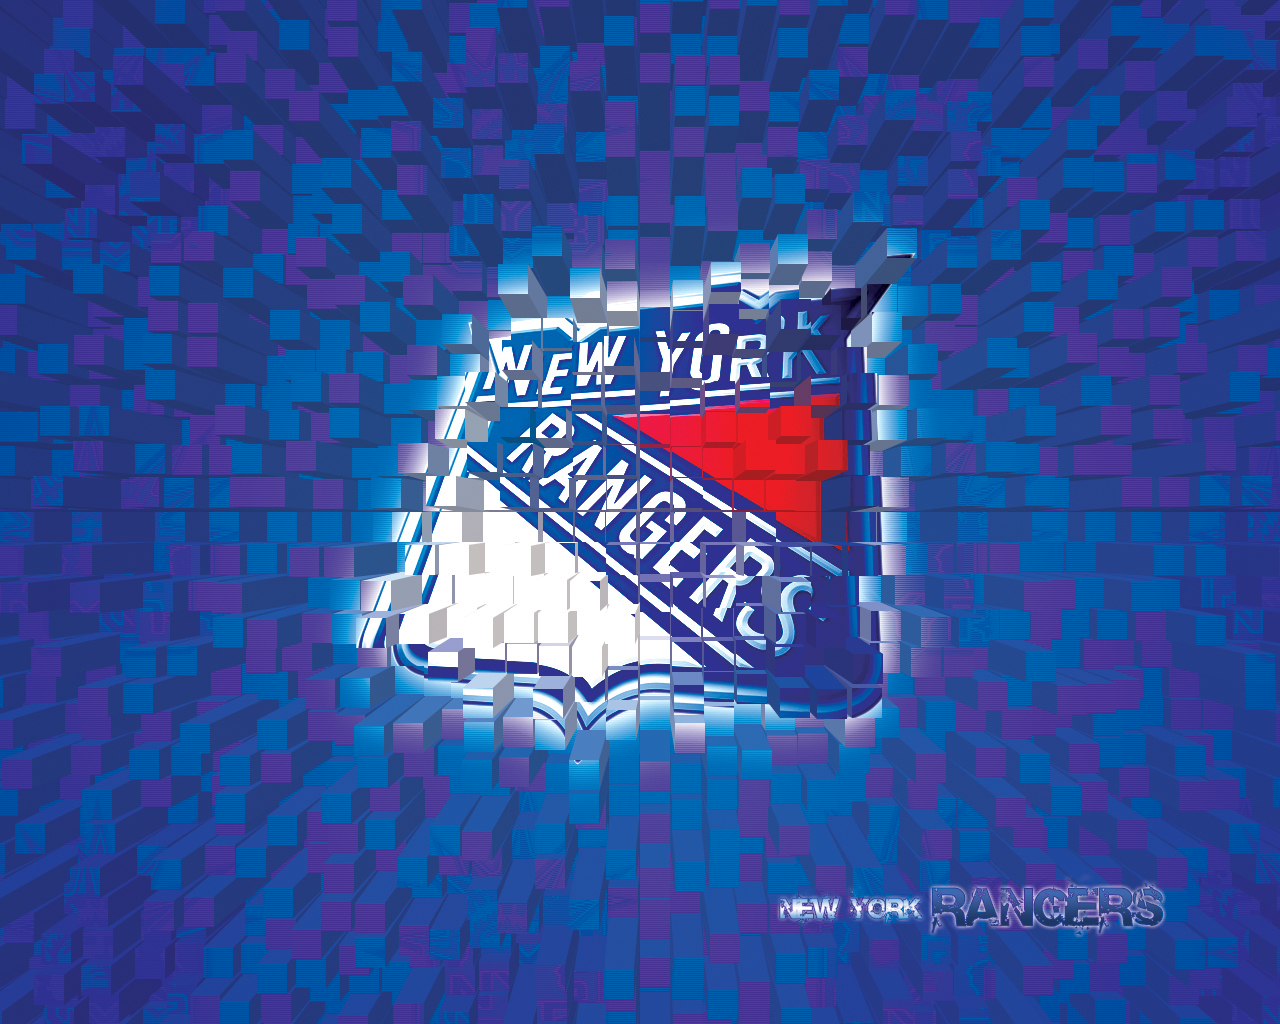 Free Download Rangers Wallpaper Related Keywords Suggestions